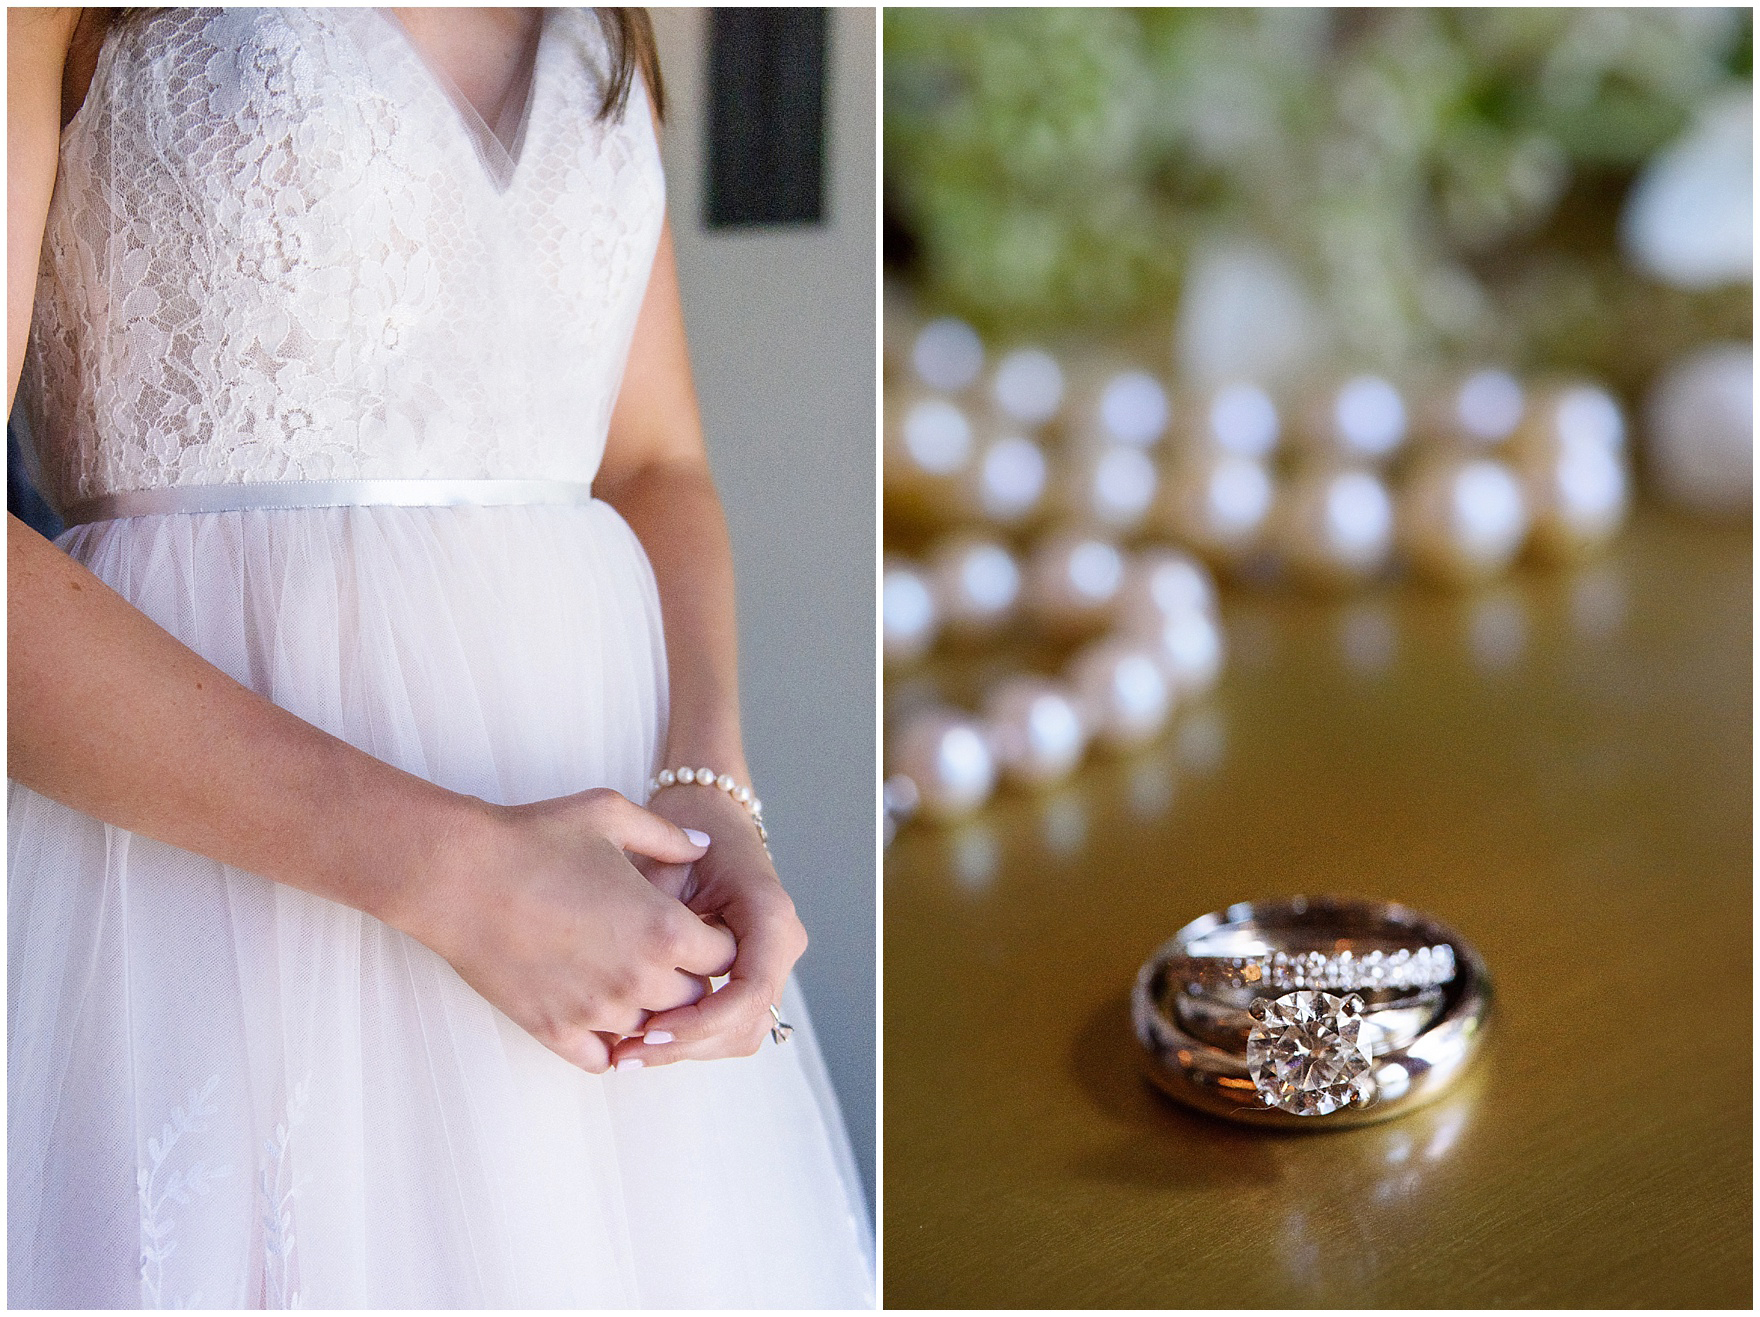 Detail of the brides pearl jewelry and engagement ring and wedding bands for a Butterfield Country Club wedding.